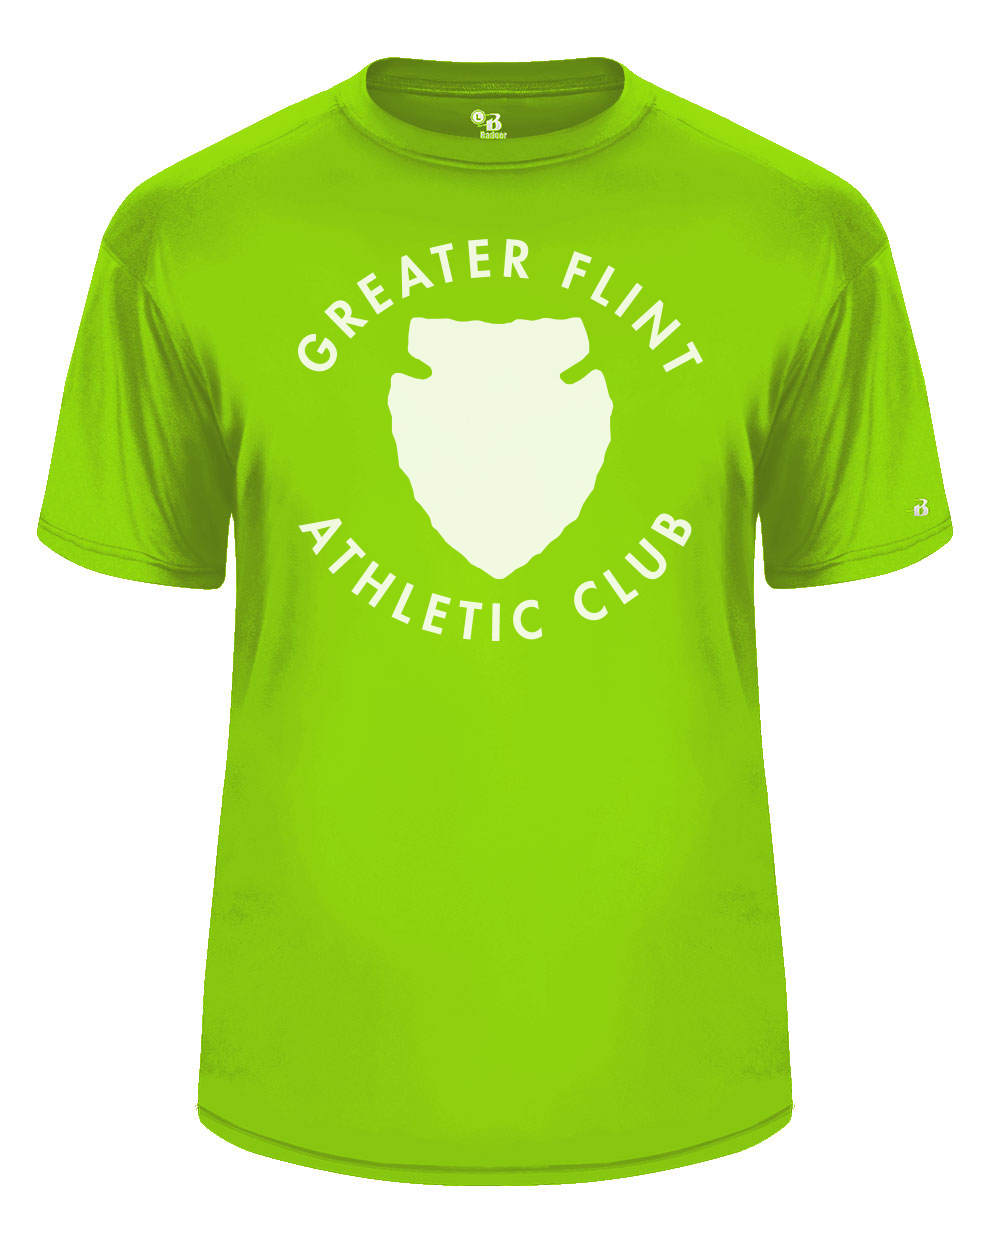 Greater Flint Athletic Club - Youth Logo T-shirt